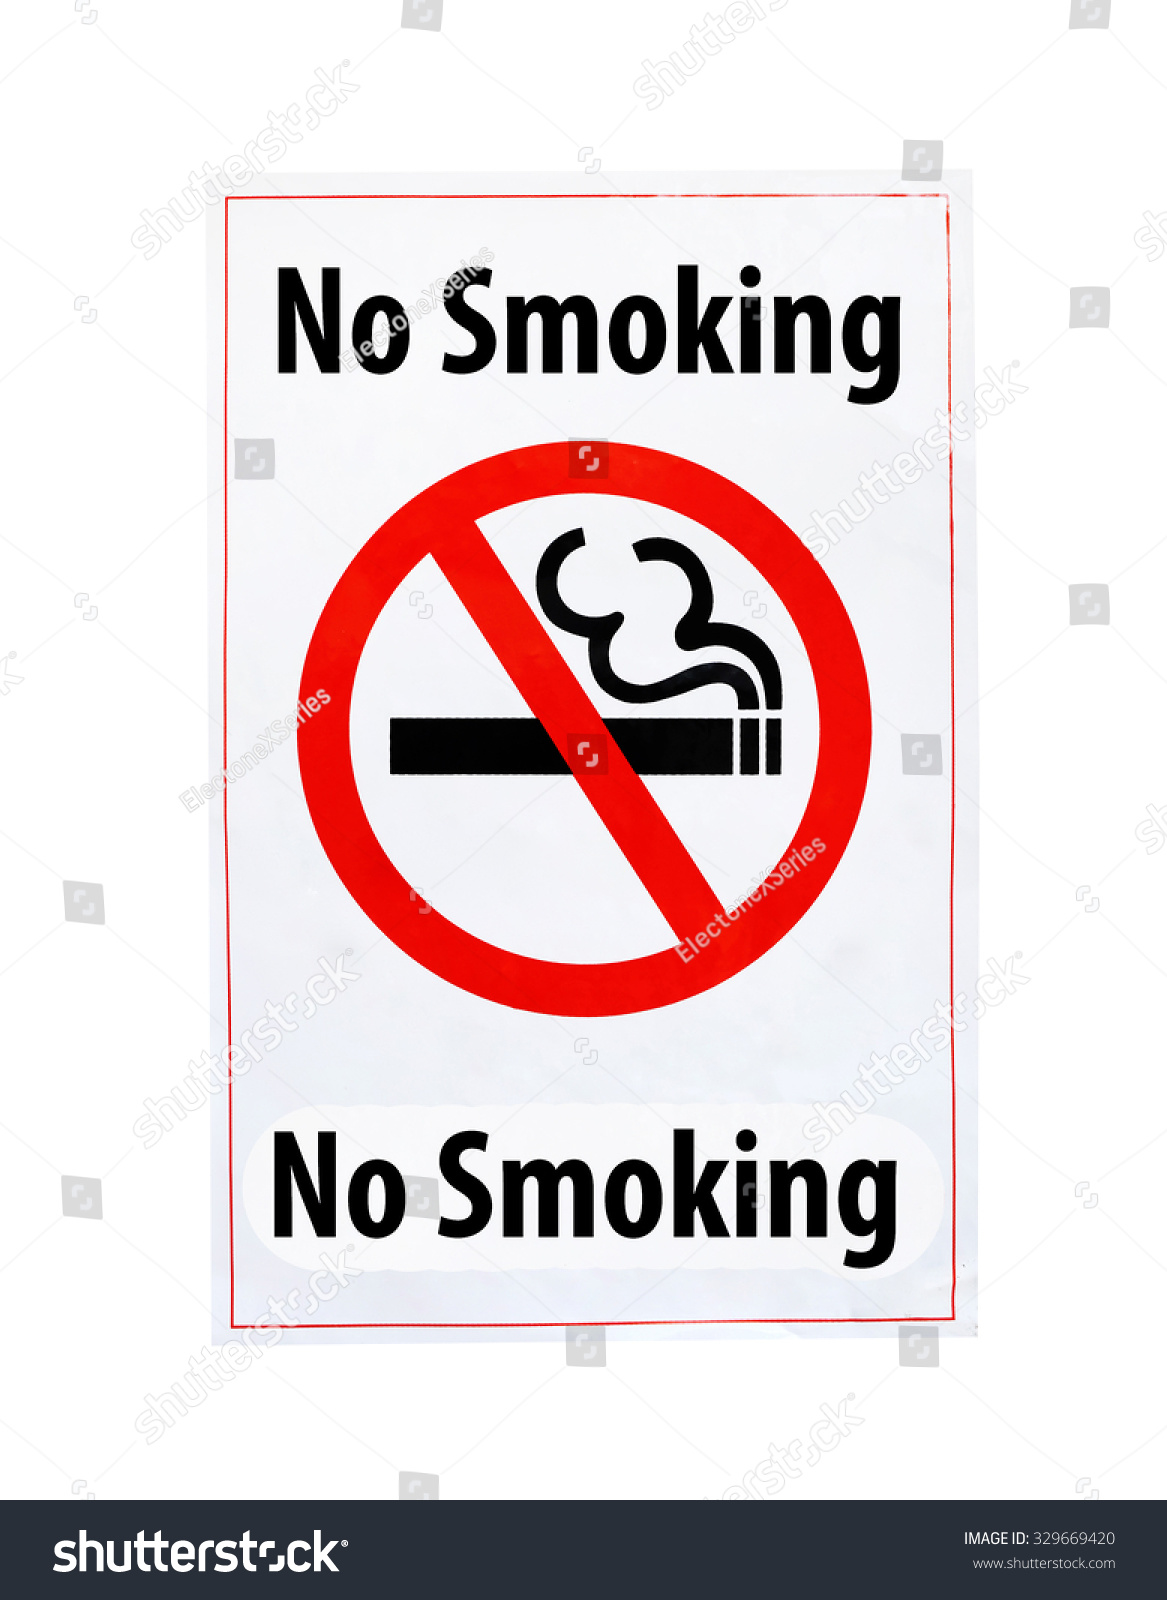 No smoking symbol text on white stock photo 329669420 shutterstock no smoking symbol and text on white background buycottarizona Images